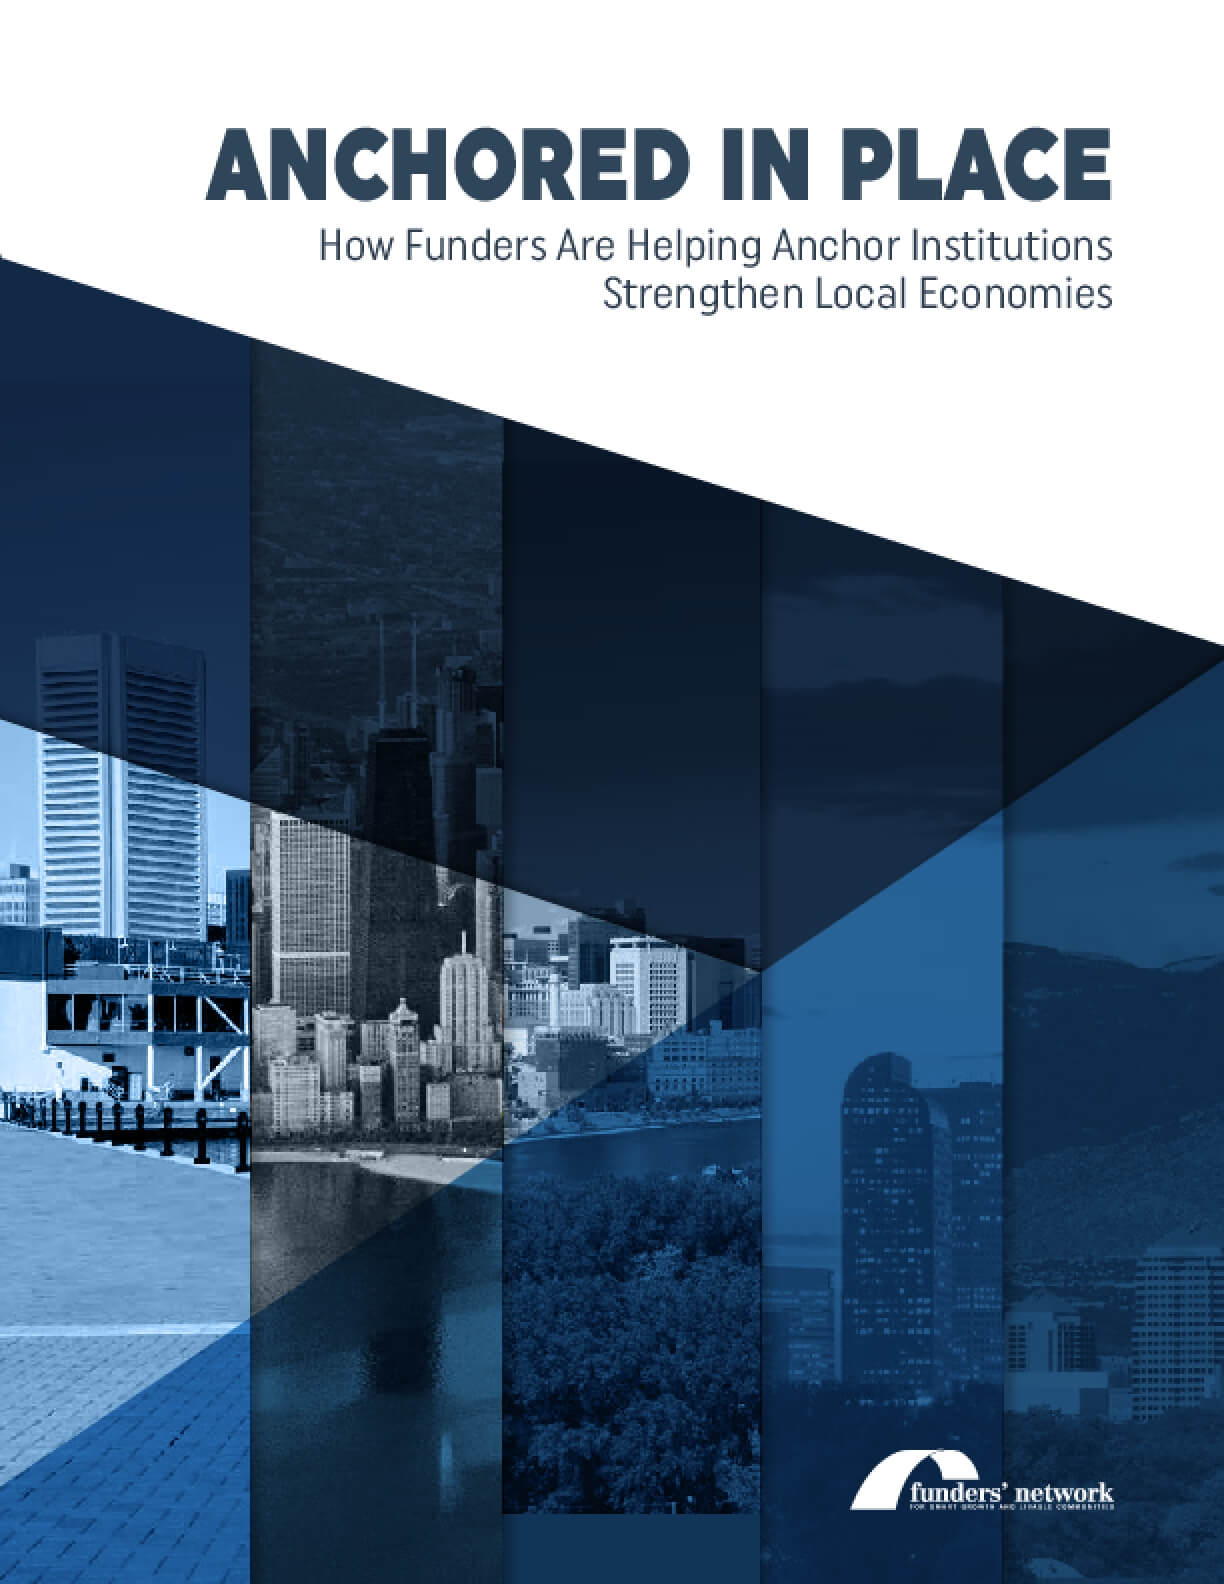 Anchored in Place: How Funders Are Helping Anchor Institutions Strengthen Local Economies